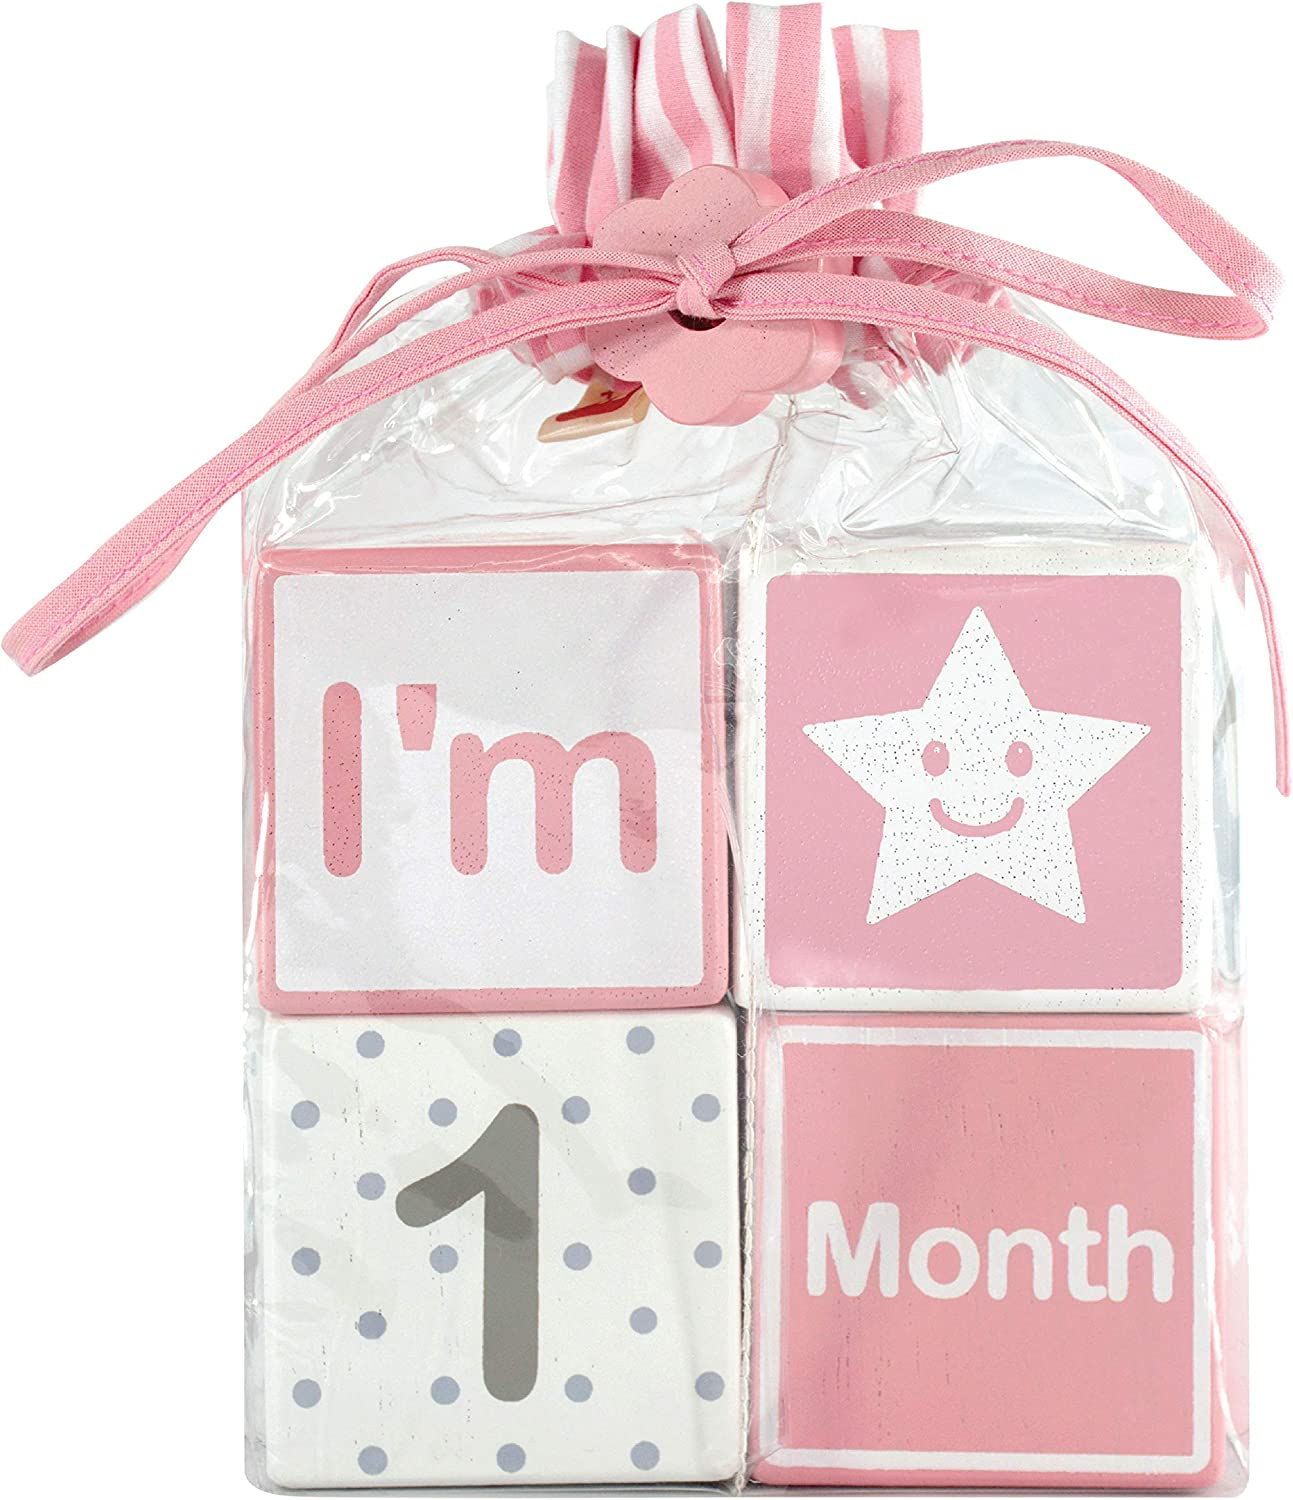 I m Solid Wood Monthly Baby Milestone Age Blocks, Newborn Gifts Keepsakes for Picture Props 4 Pcs Pink